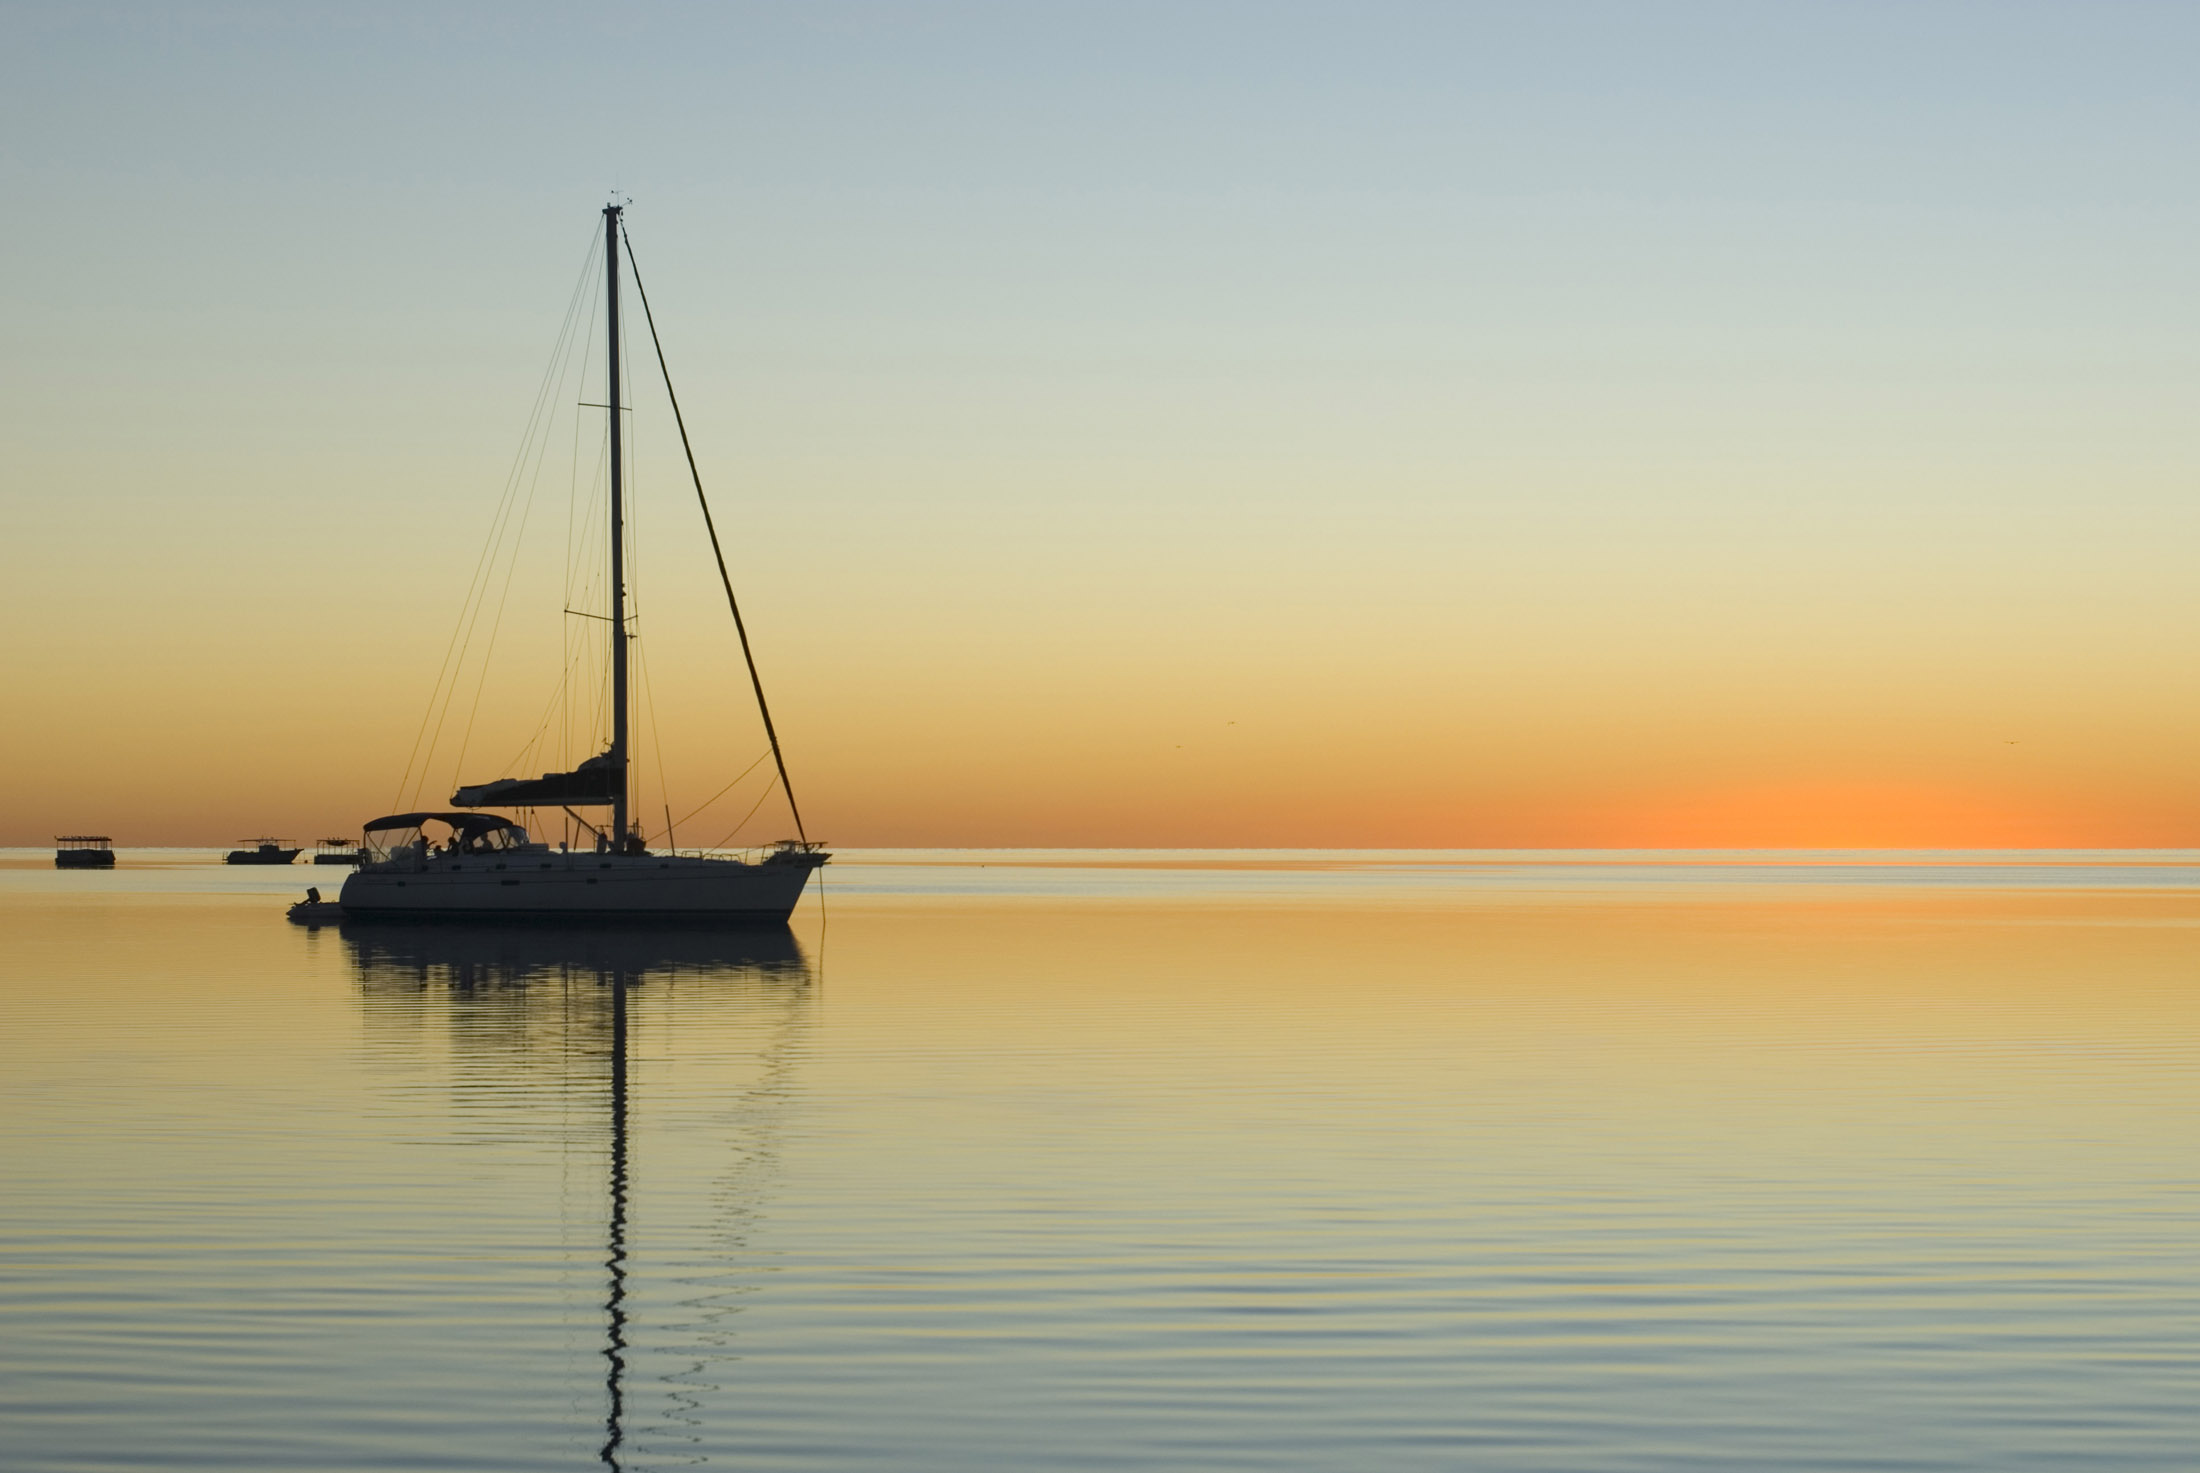 sunset over calm tropical waters with the silhouette of a sailing yacht